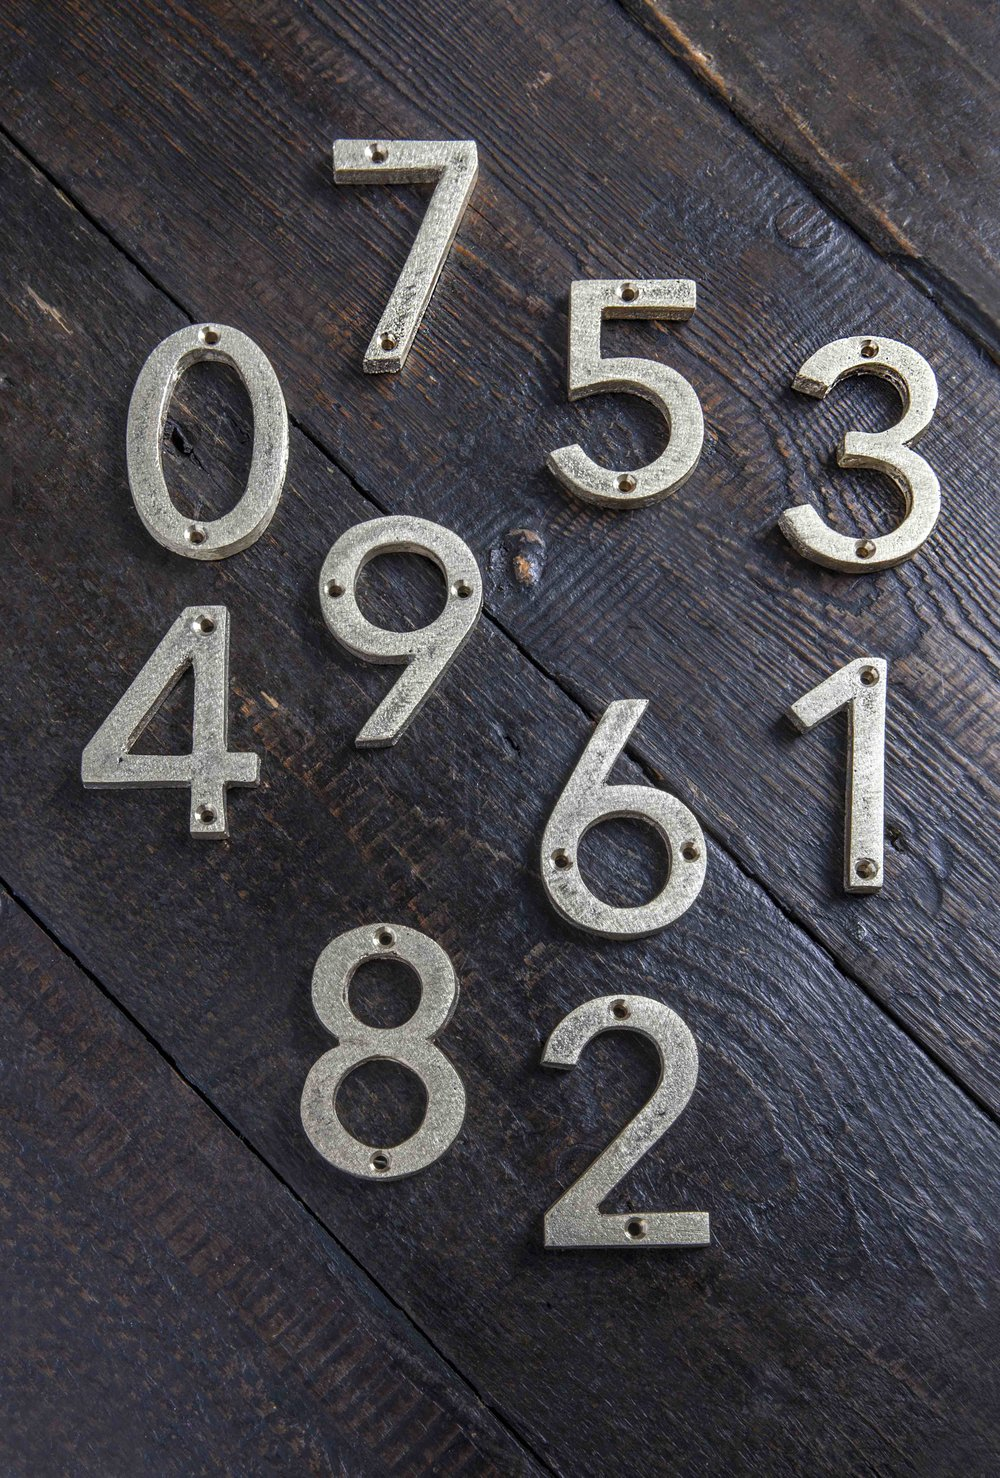 Door Numbers Cast Brass & Door Numbers Cast Brass u2014 Mark Lewis Interior Design